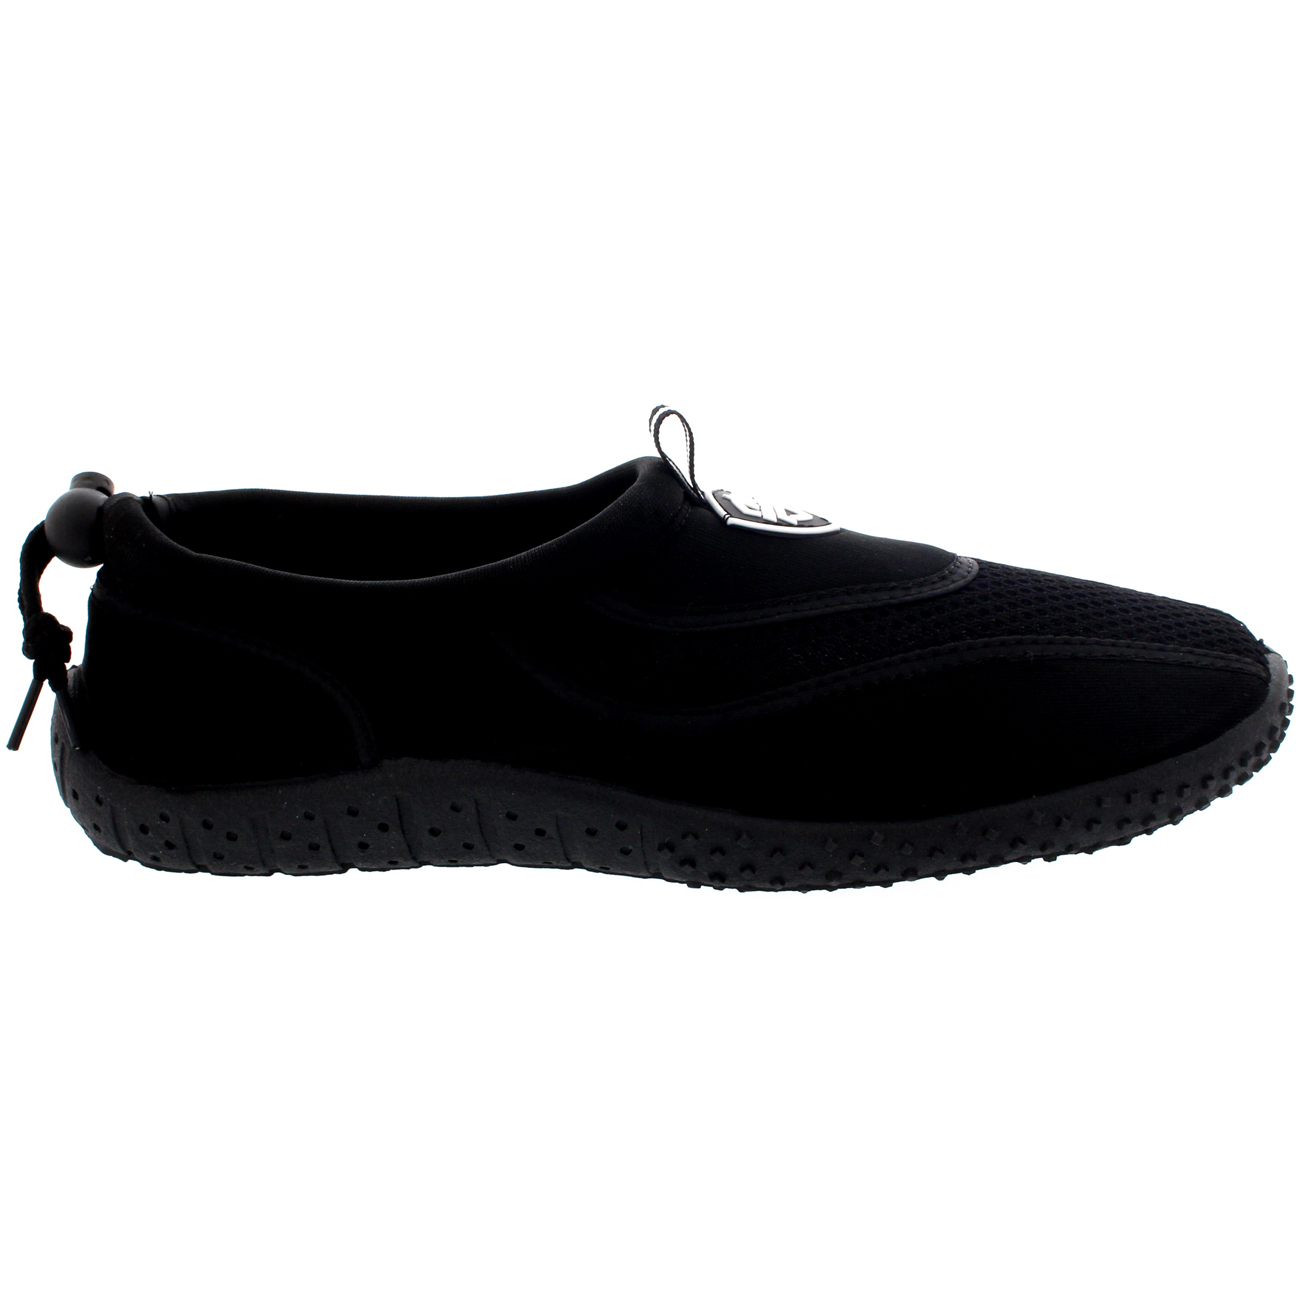 Womens Water Shoes For Beach